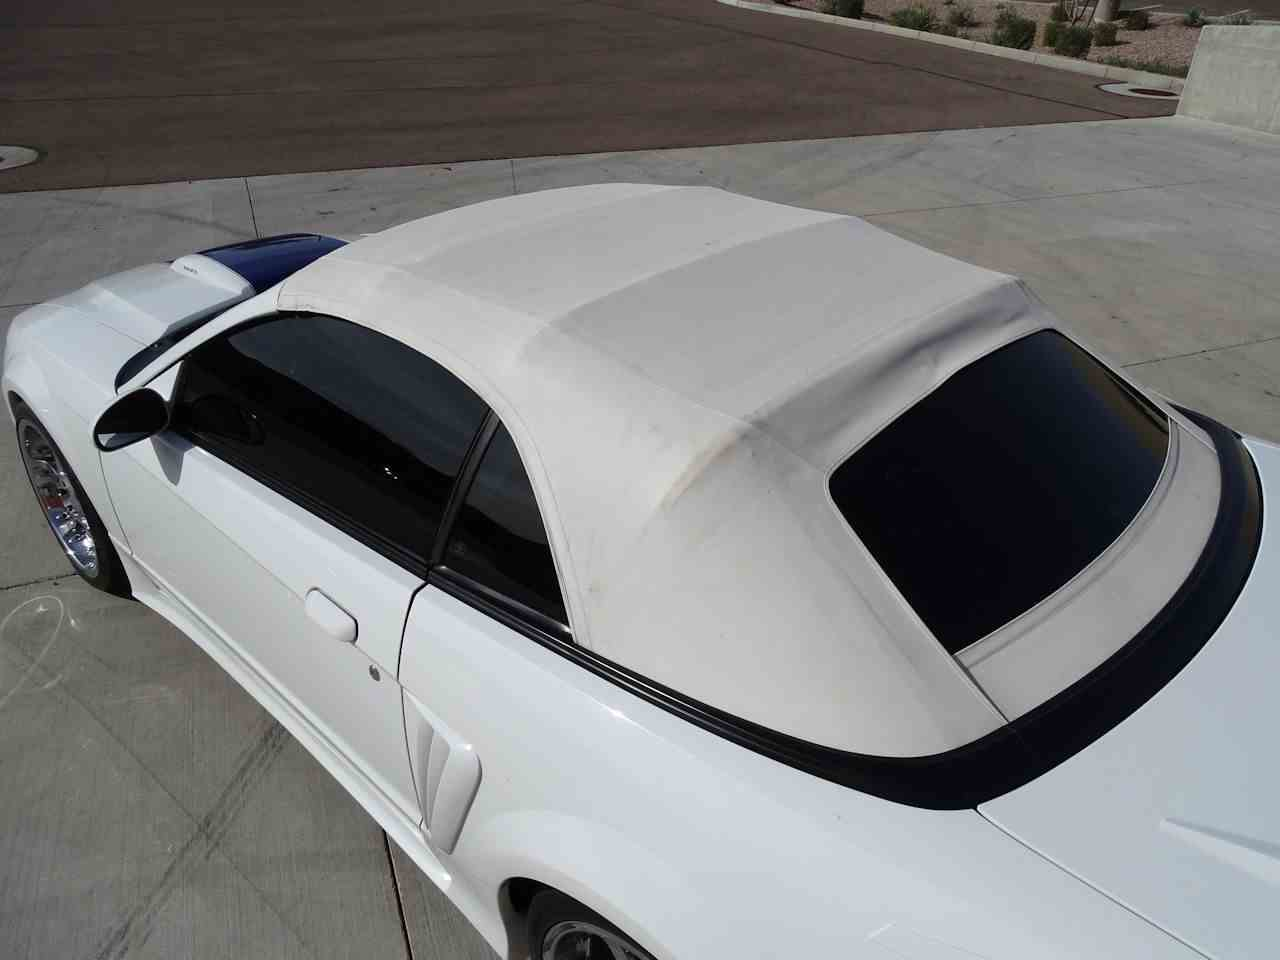 Large Picture of 2002 Mustang located in Arizona - $34,995.00 Offered by Gateway Classic Cars - Scottsdale - MZG0